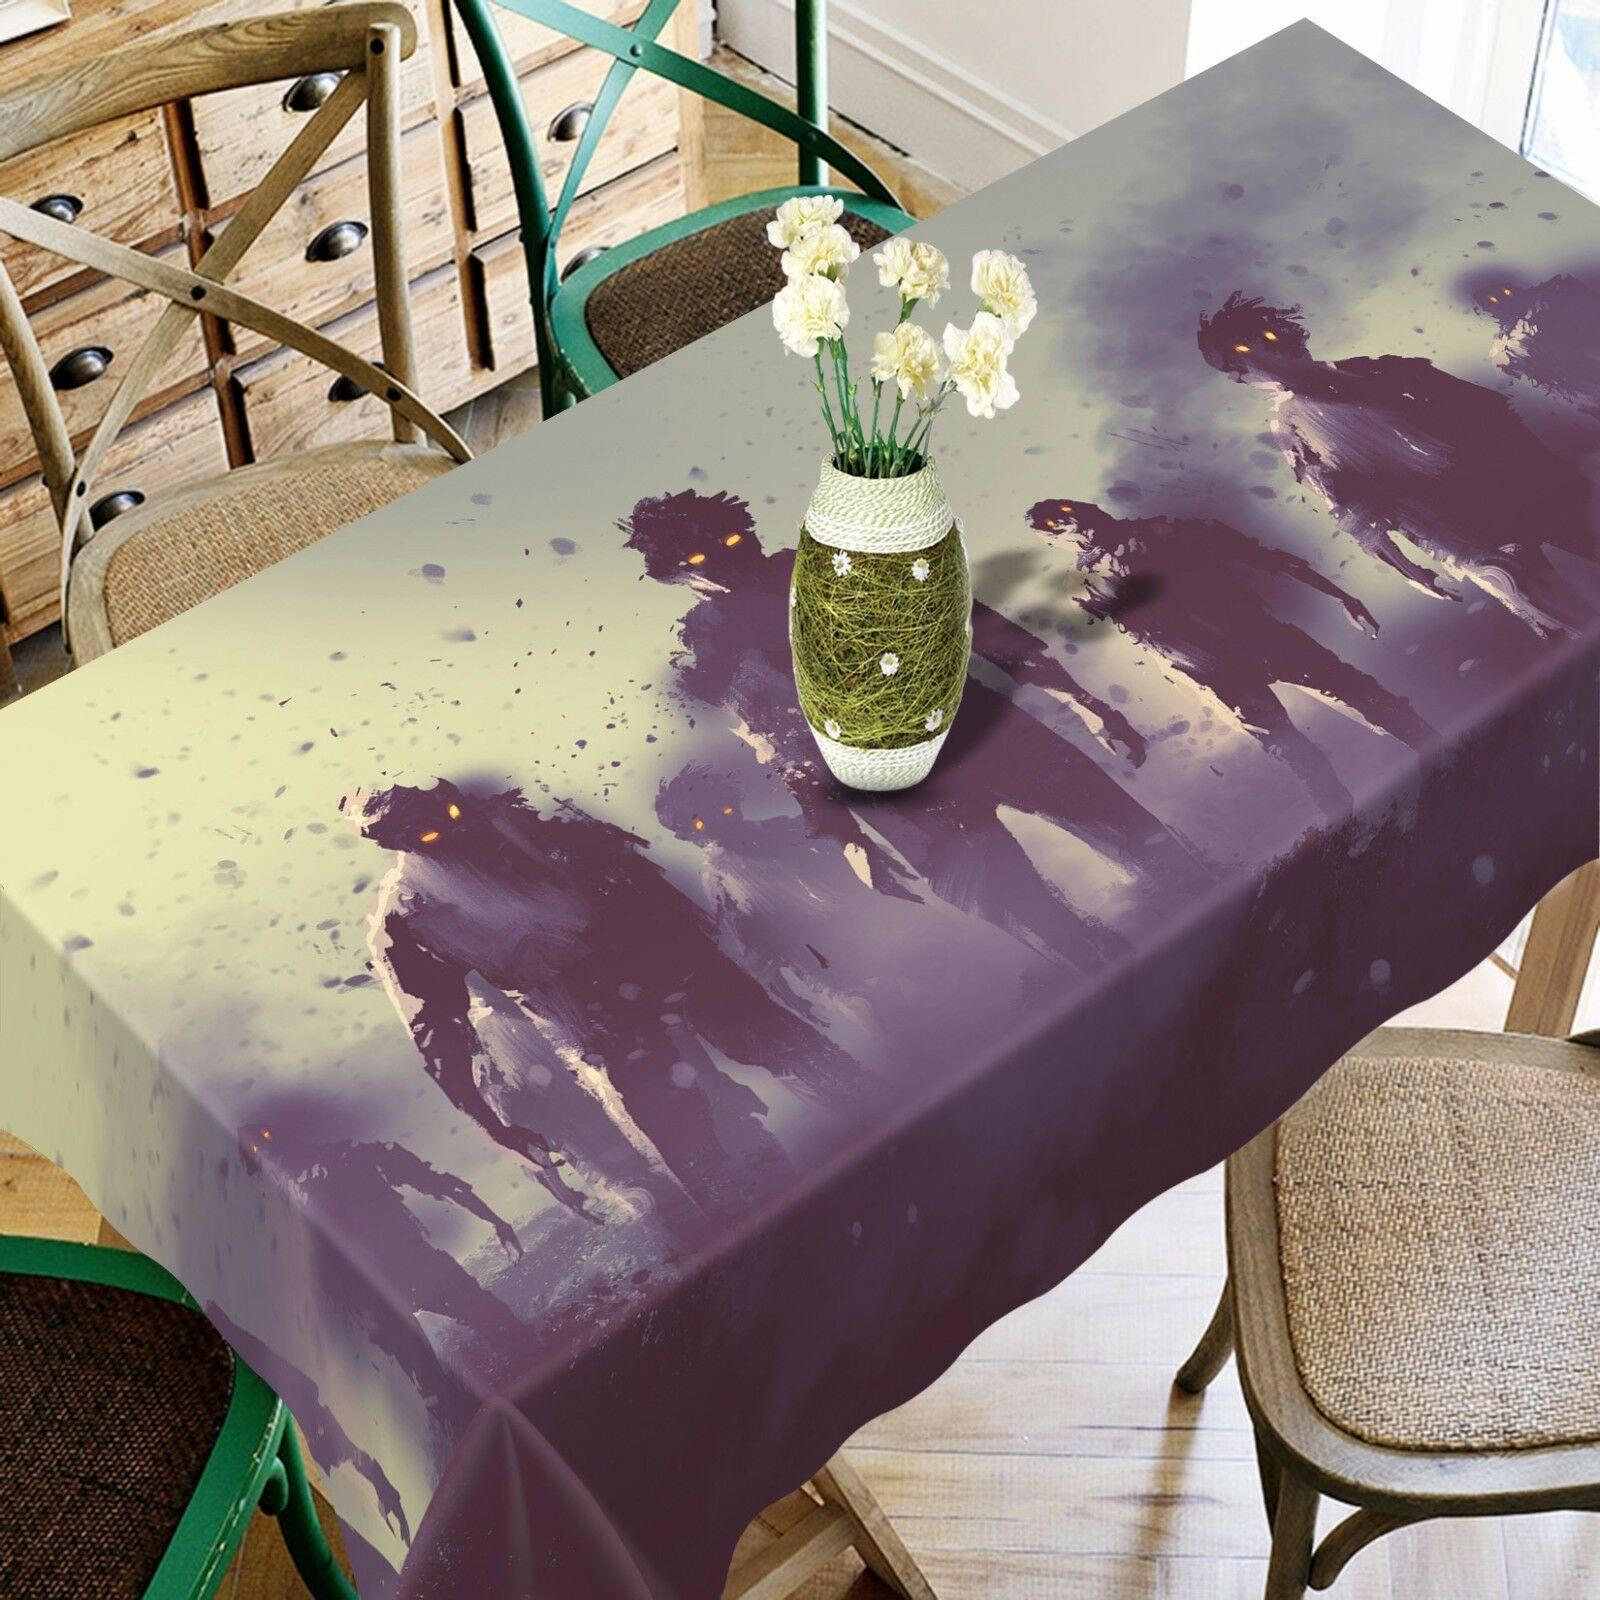 3D Zombie Group 4 Tablecloth Table Cover Cloth Birthday Party Event AJ WALLPAPER